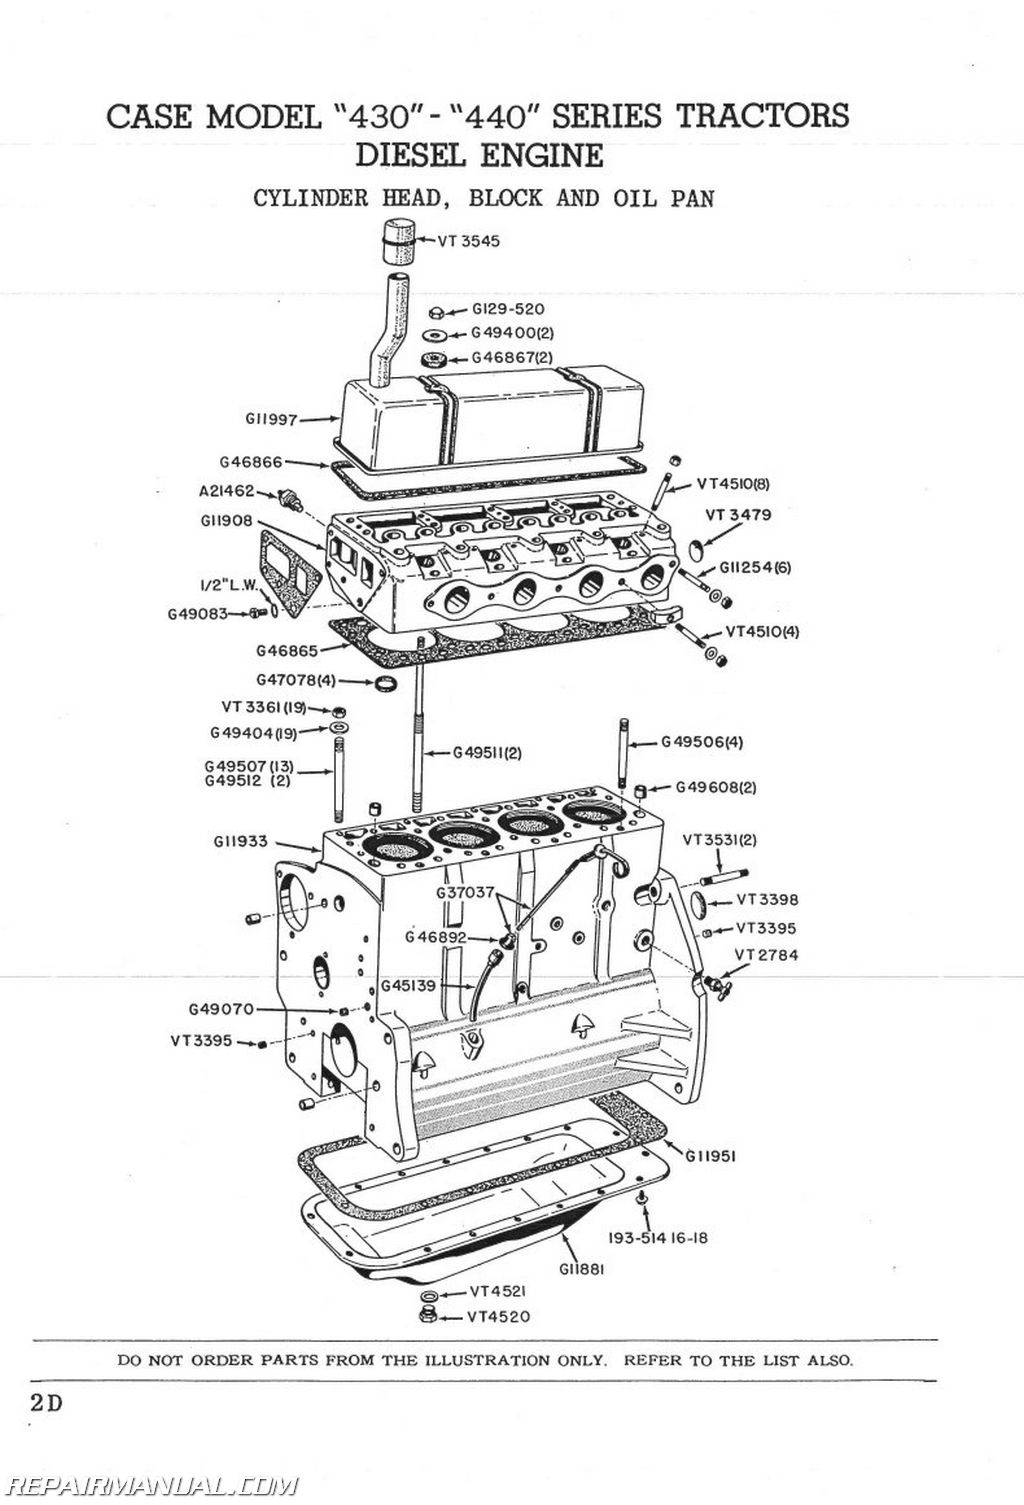 Craftsman 113244510 Parts List And Diagram Manual Guide